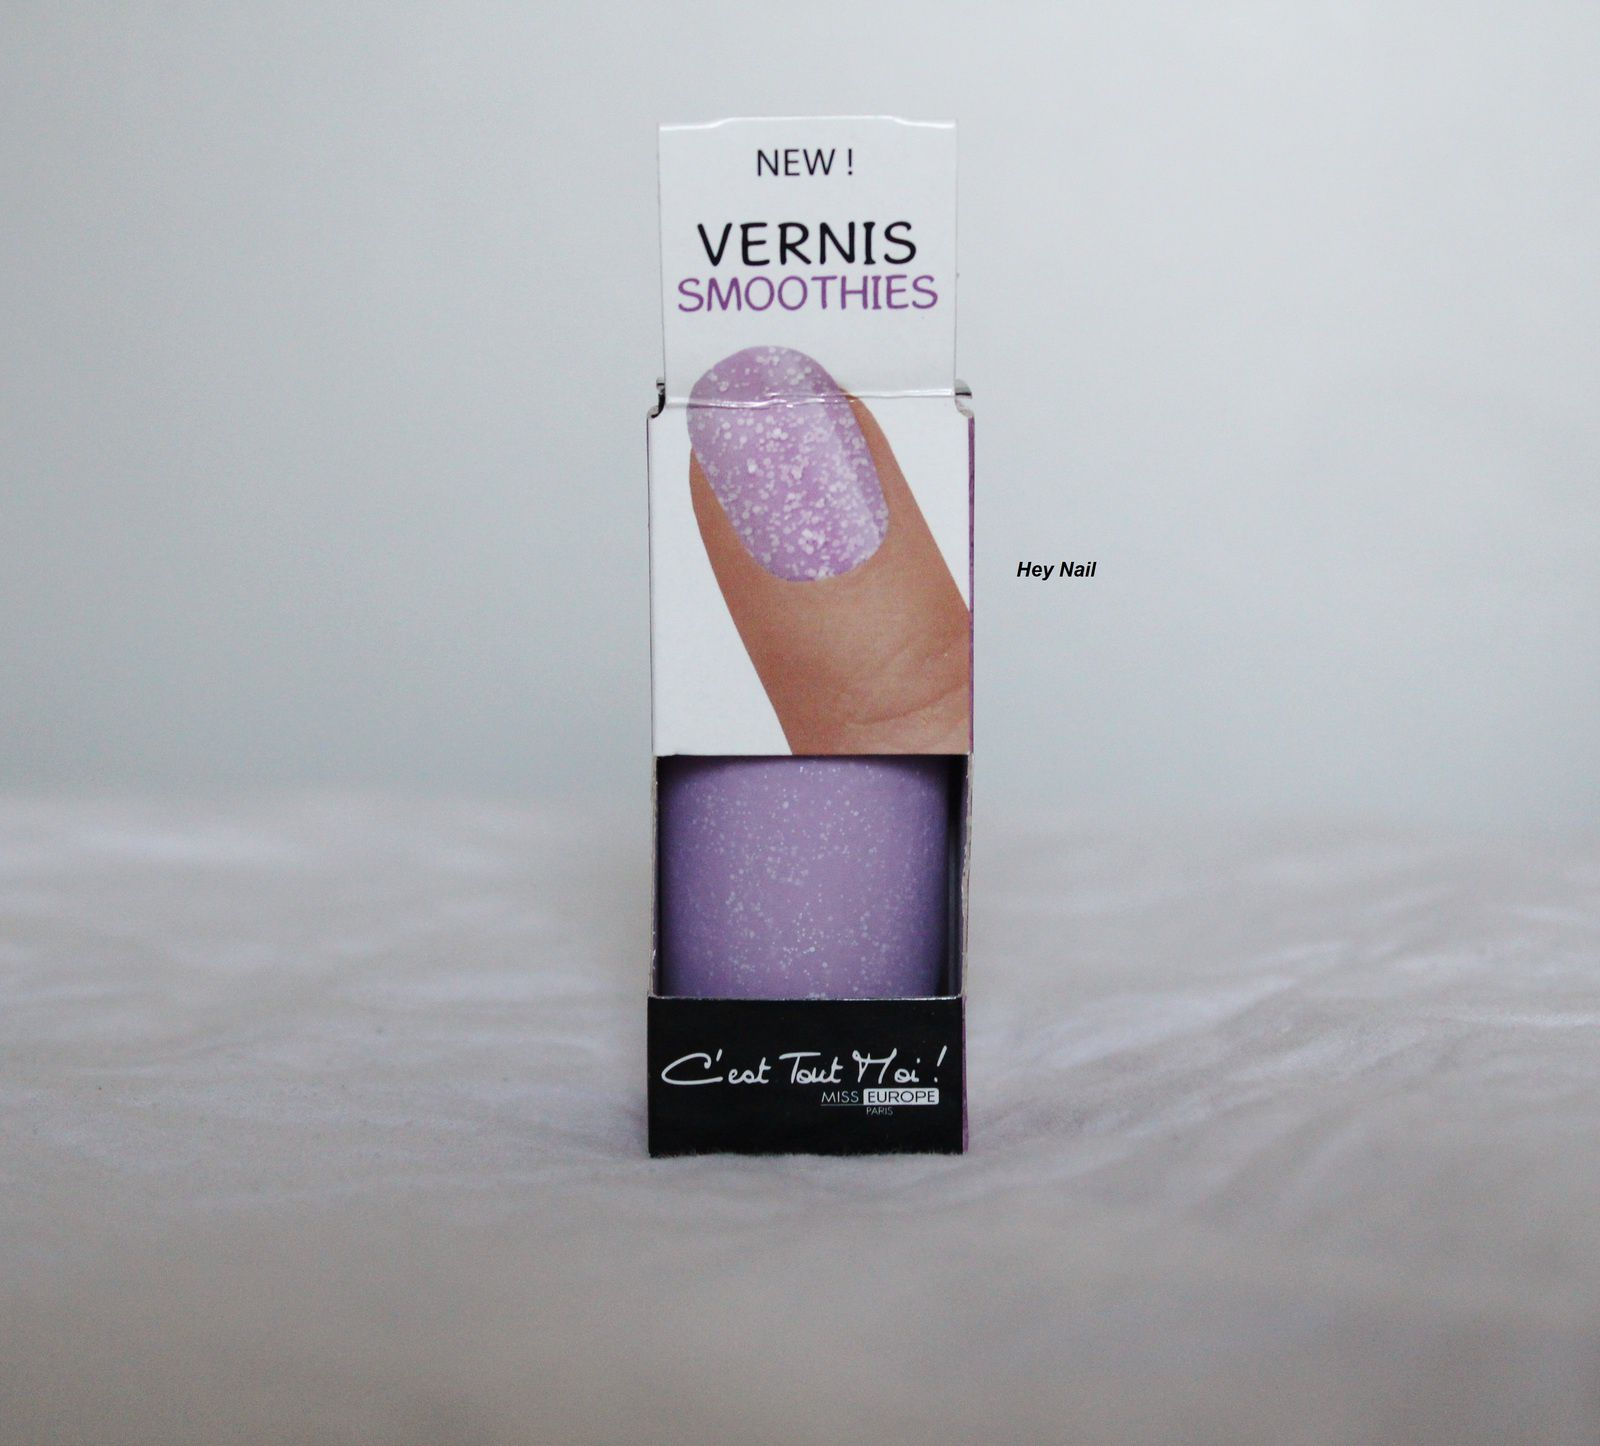 Miss Europe Vernis Smoothie - N°2 Lavande